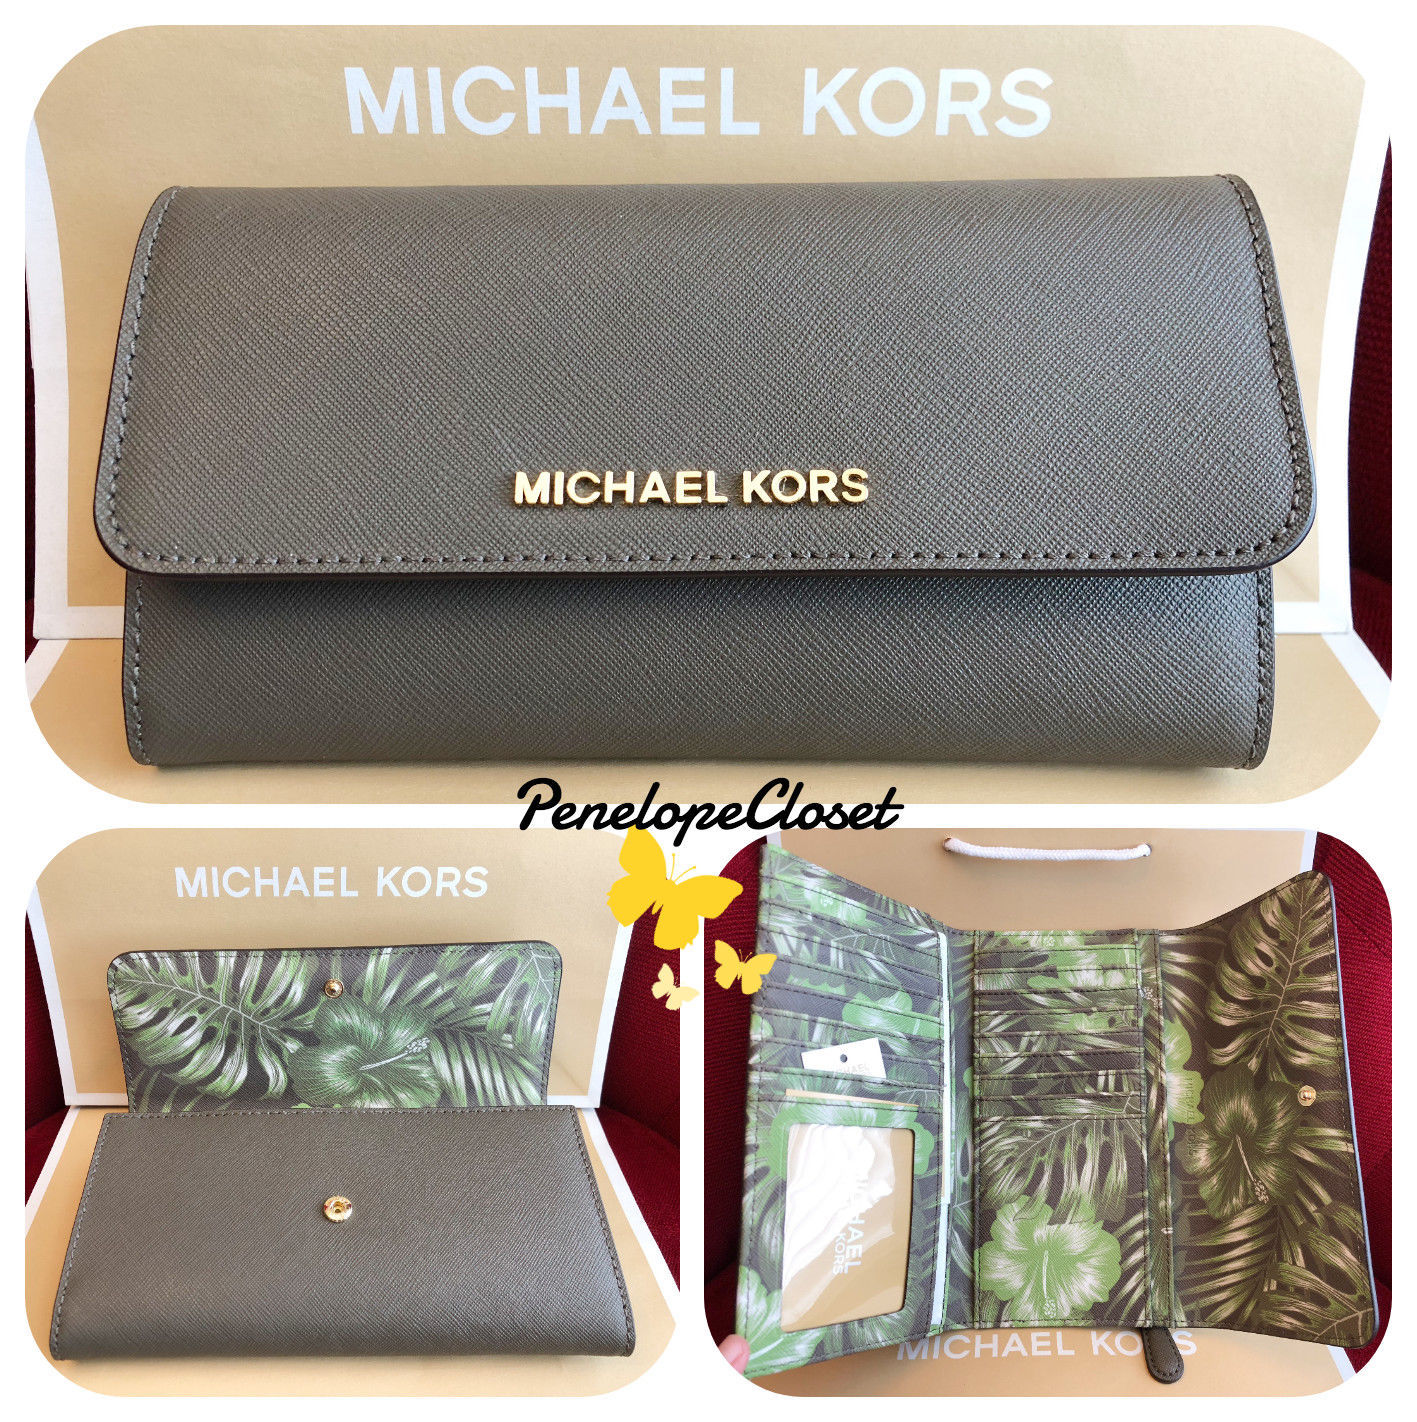 255e2f13ce3b S l1600. S l1600. Previous. NWT MICHAEL KORS JET SET TRAVEL PALM LEAF PRINT LARGE  TRIFOLD WALLET ...